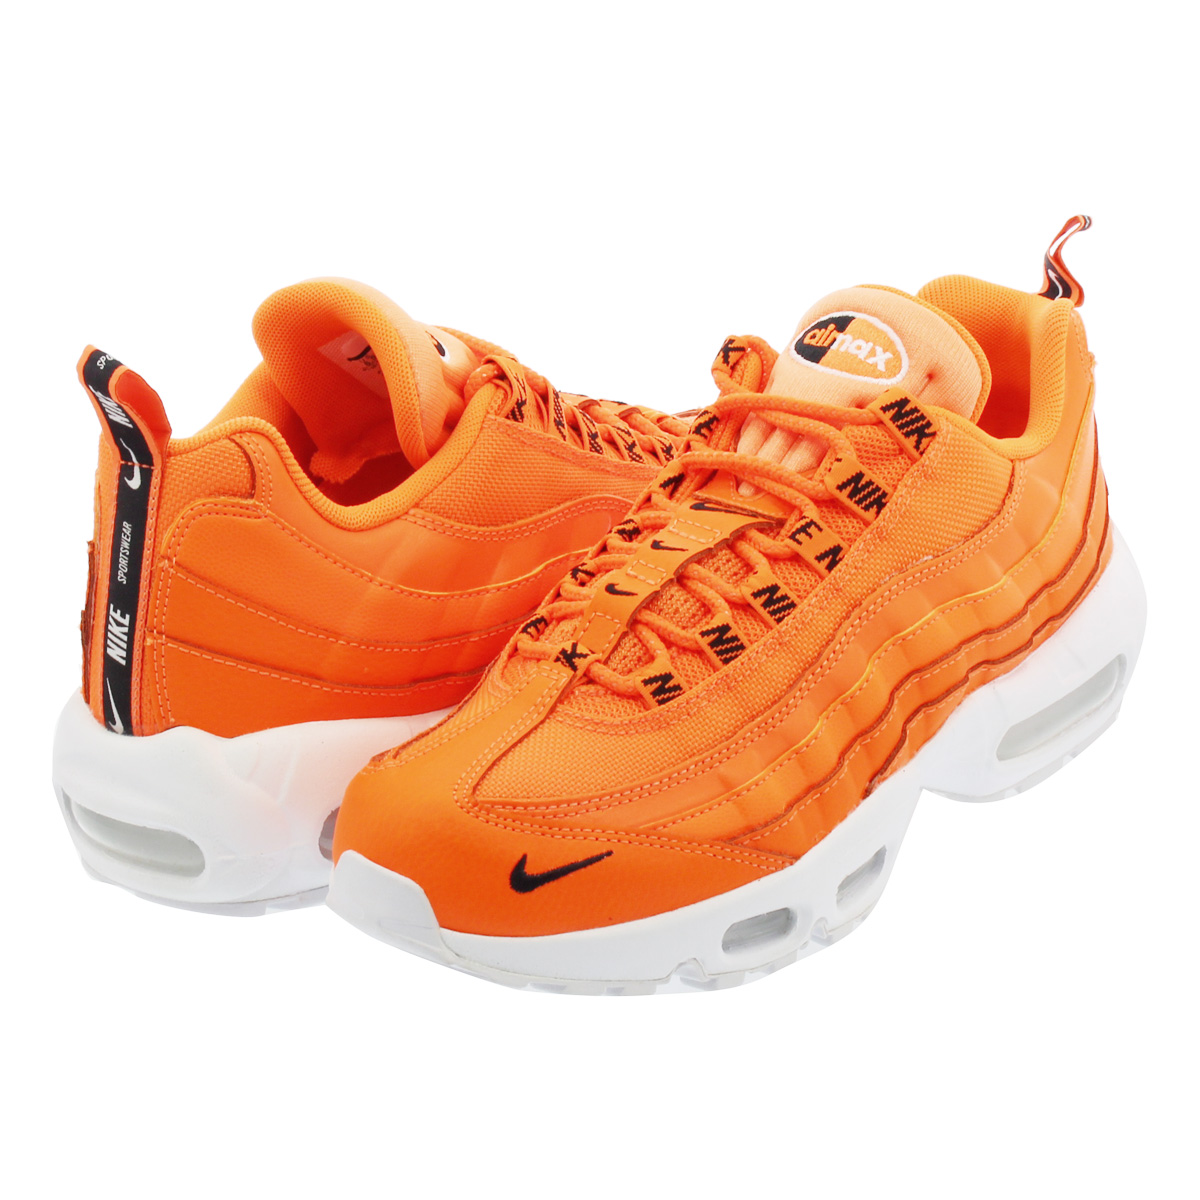 SELECT SHOP LOWTEX  NIKE AIR MAX 95 PREMIUM Kie Ney AMAX 95 premium TOTAL  ORANGE BLACK WHITE 538 a7115b088